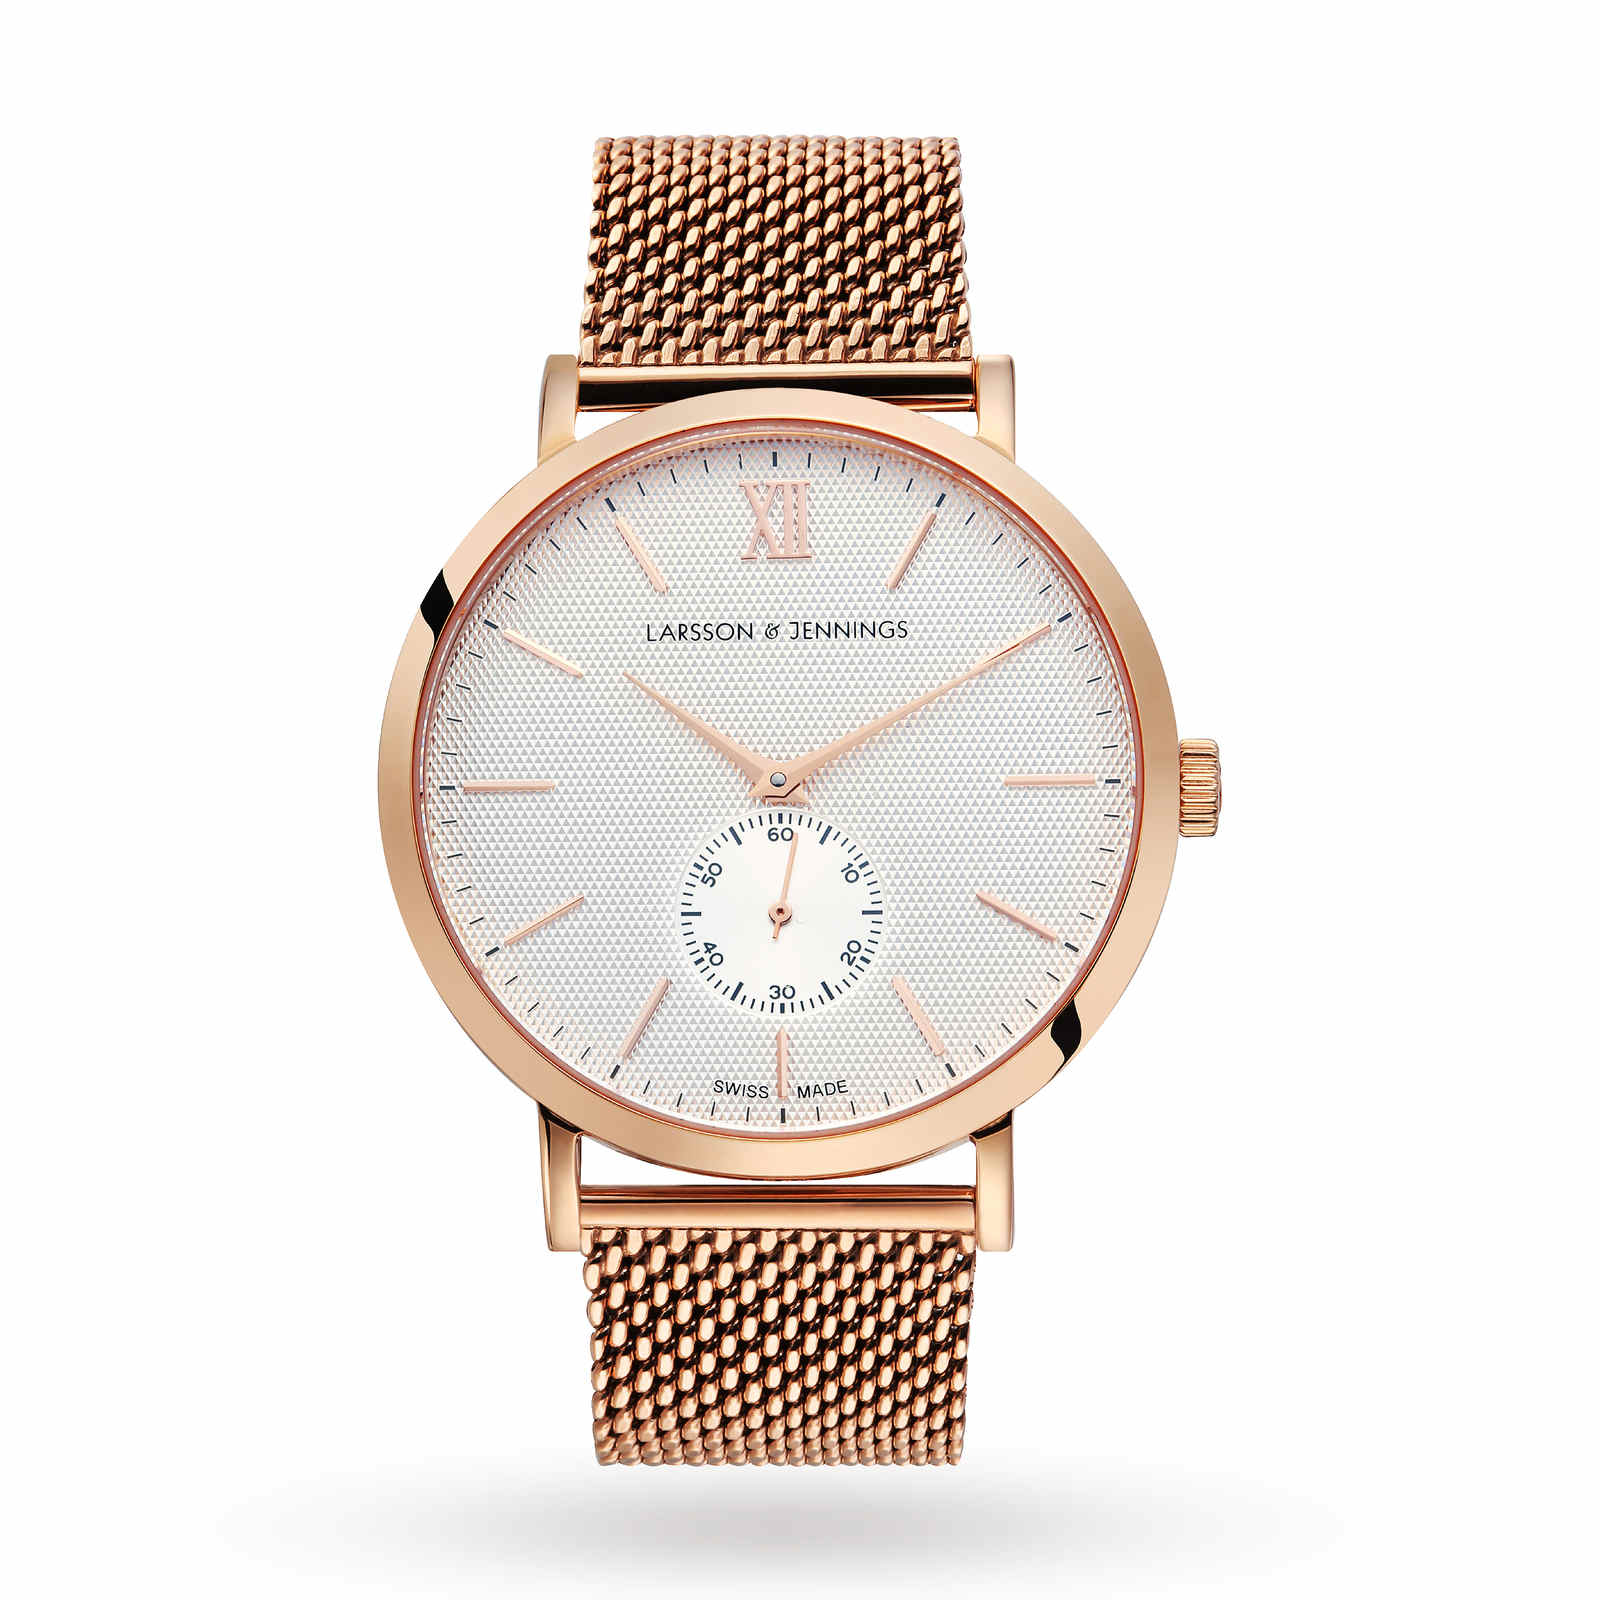 Larsson & Jennings Lugano 40mm Mechanical, Unisex Rose Gold Mesh Watch